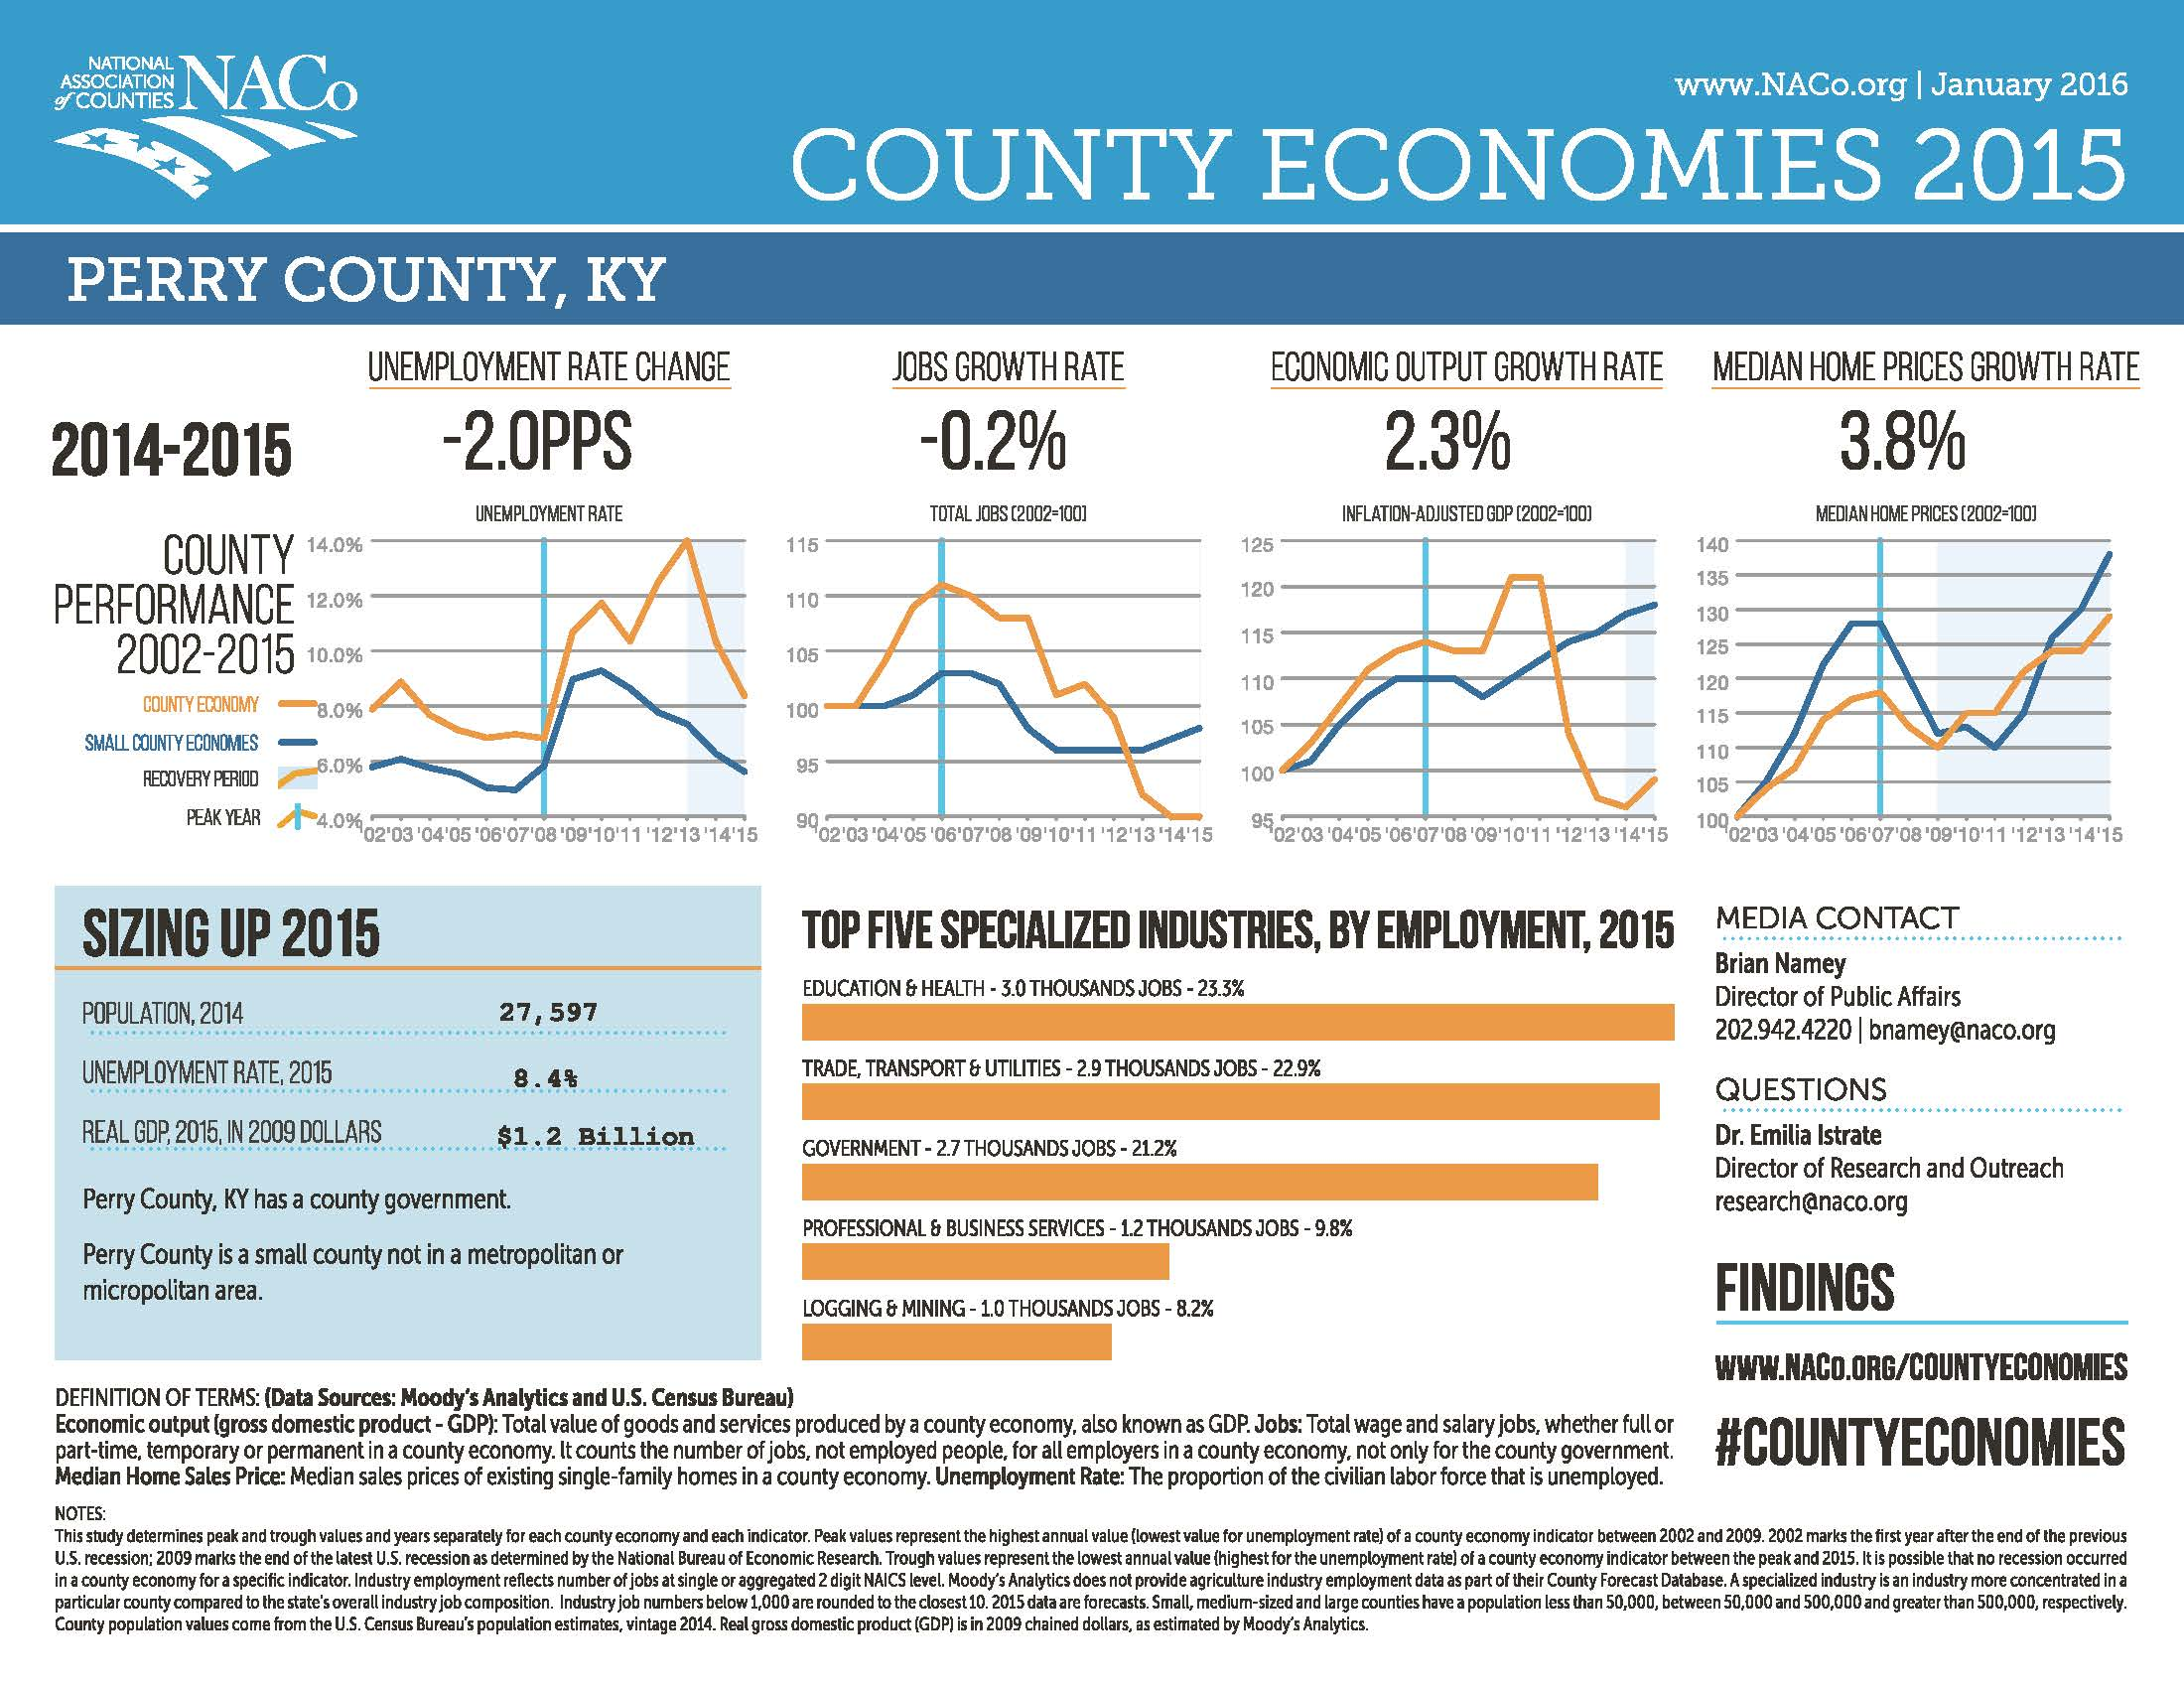 NACO stats 2015 PerryCountyKY